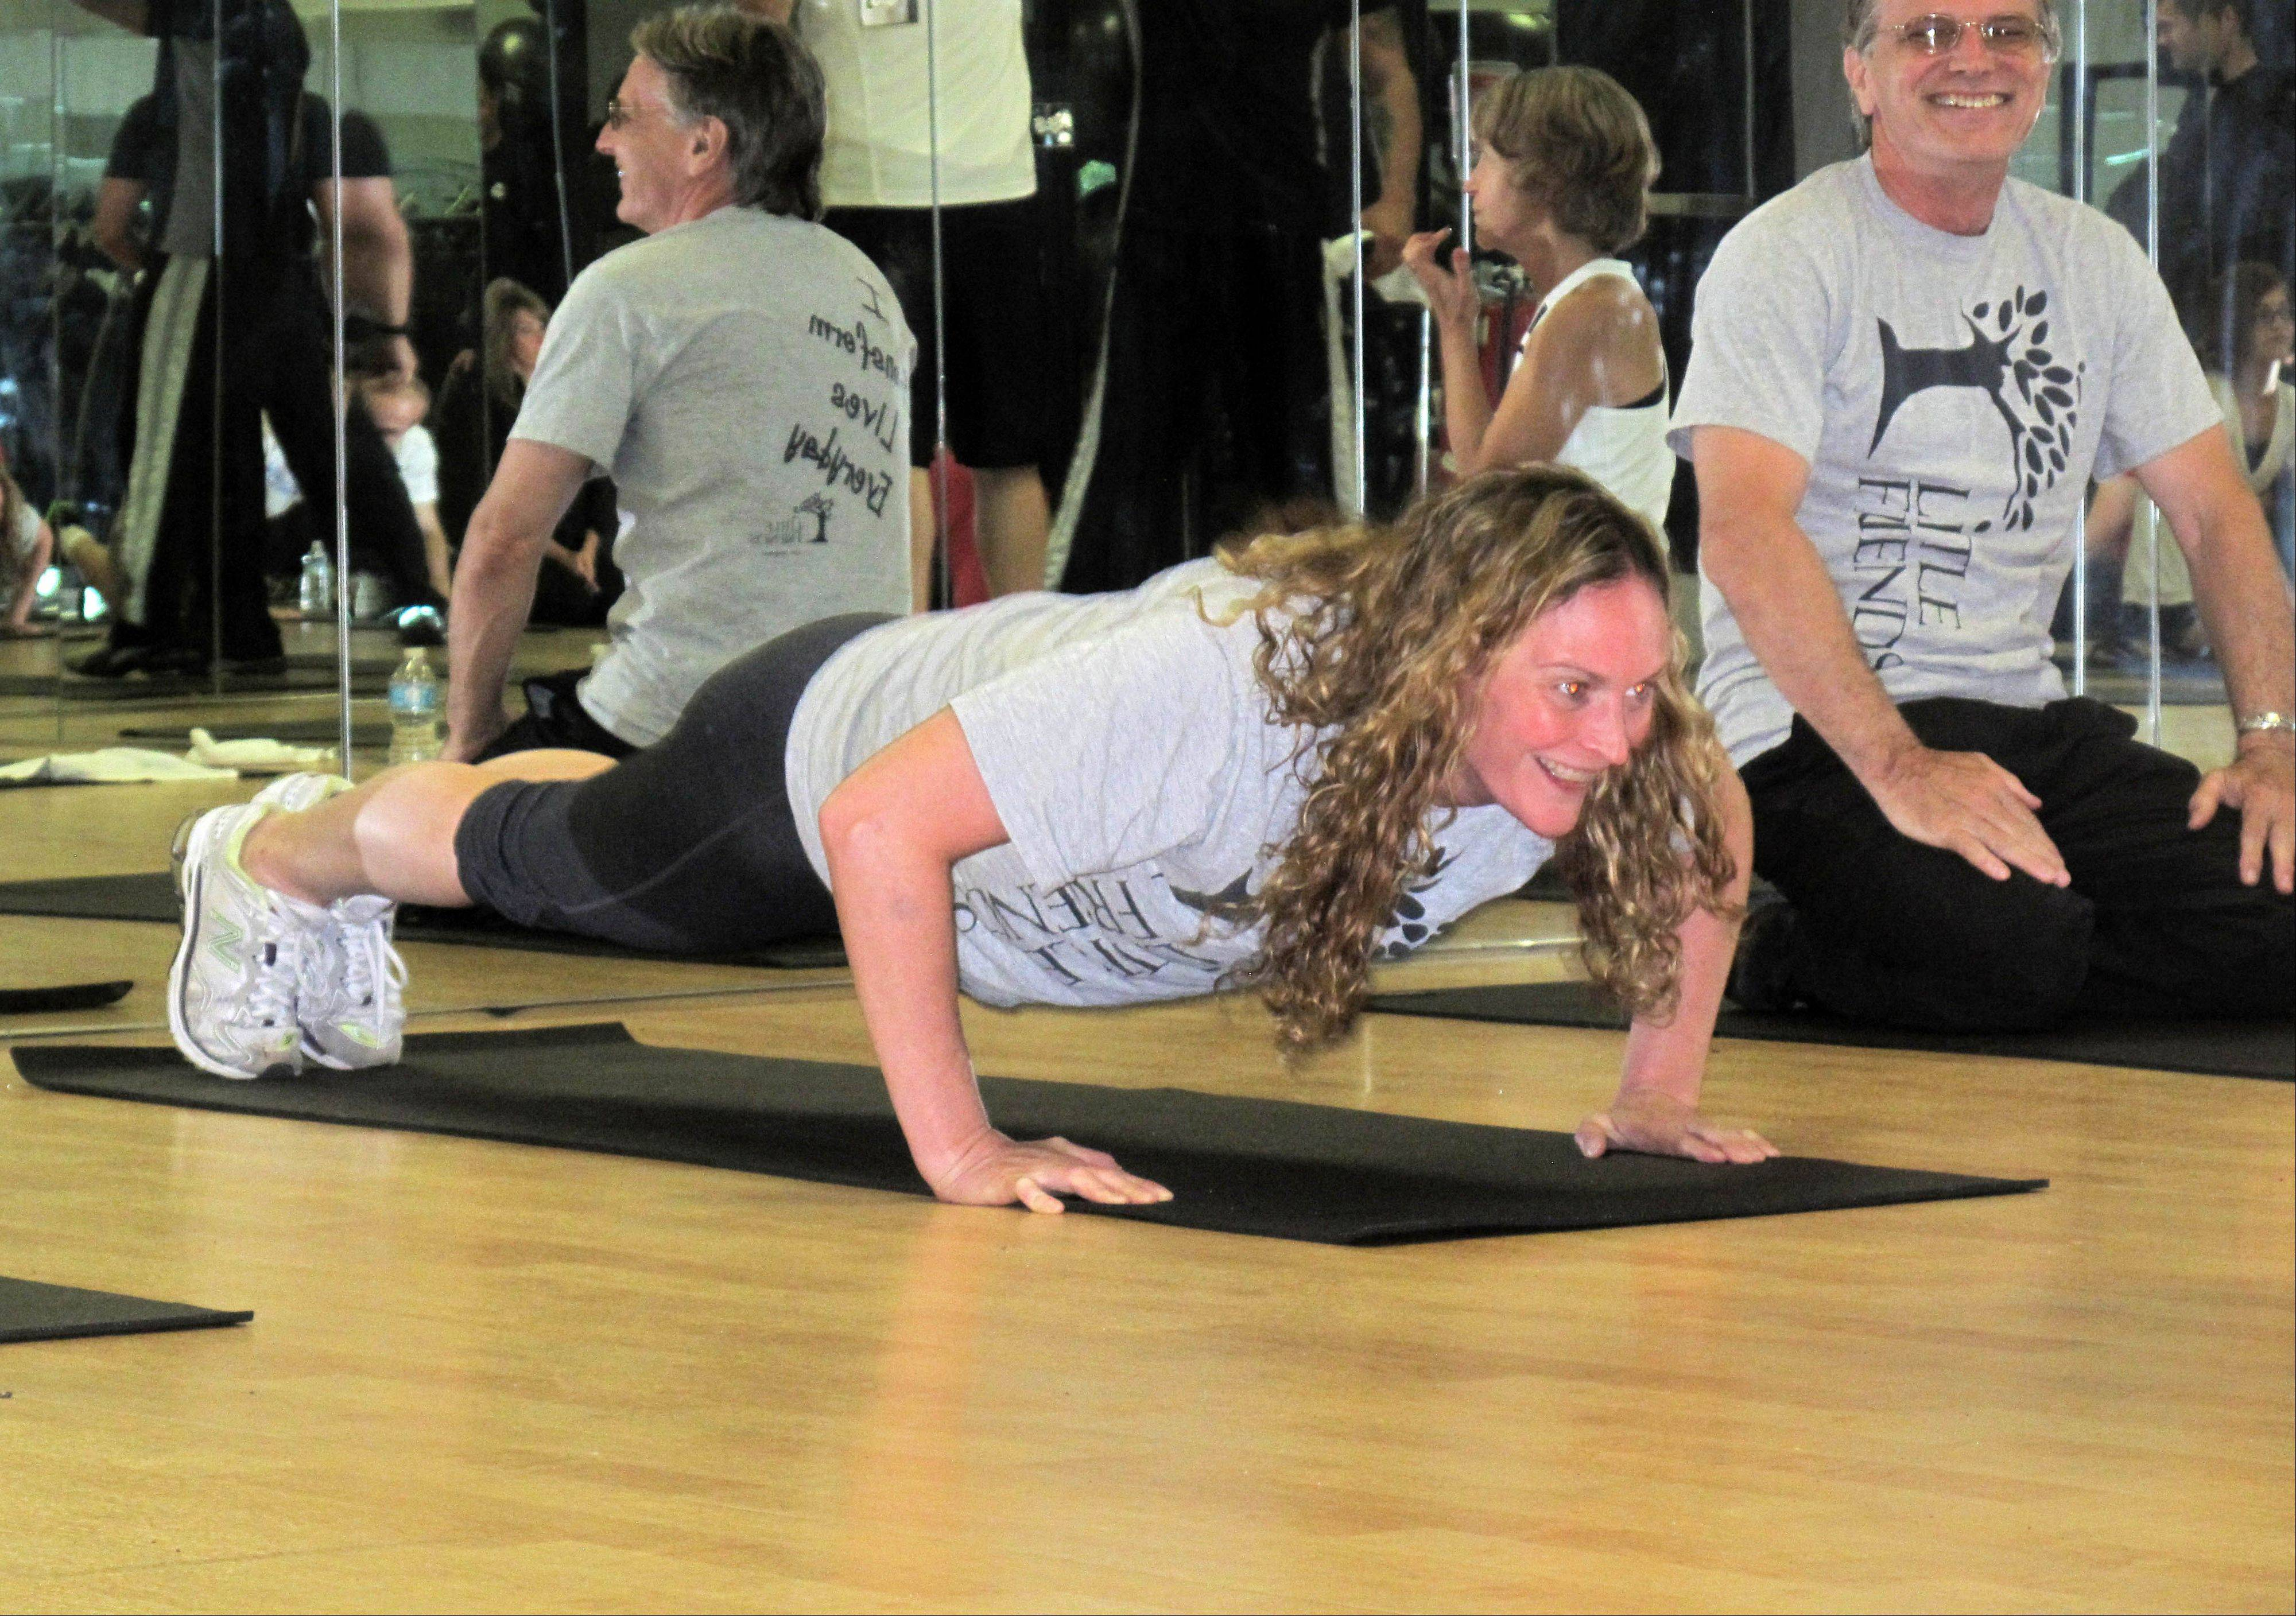 Kari Krzemkowski, director of finance for Little Friends in Naperville, does her first round of 10 push-ups during the Big Push-ups for Little Friends fundraiser hosted by Midwest Fit Club. The event challenged teams of people to take turns doing push-ups for an hour and the gym donated 5 cents for every push-up completed in 24 hours.